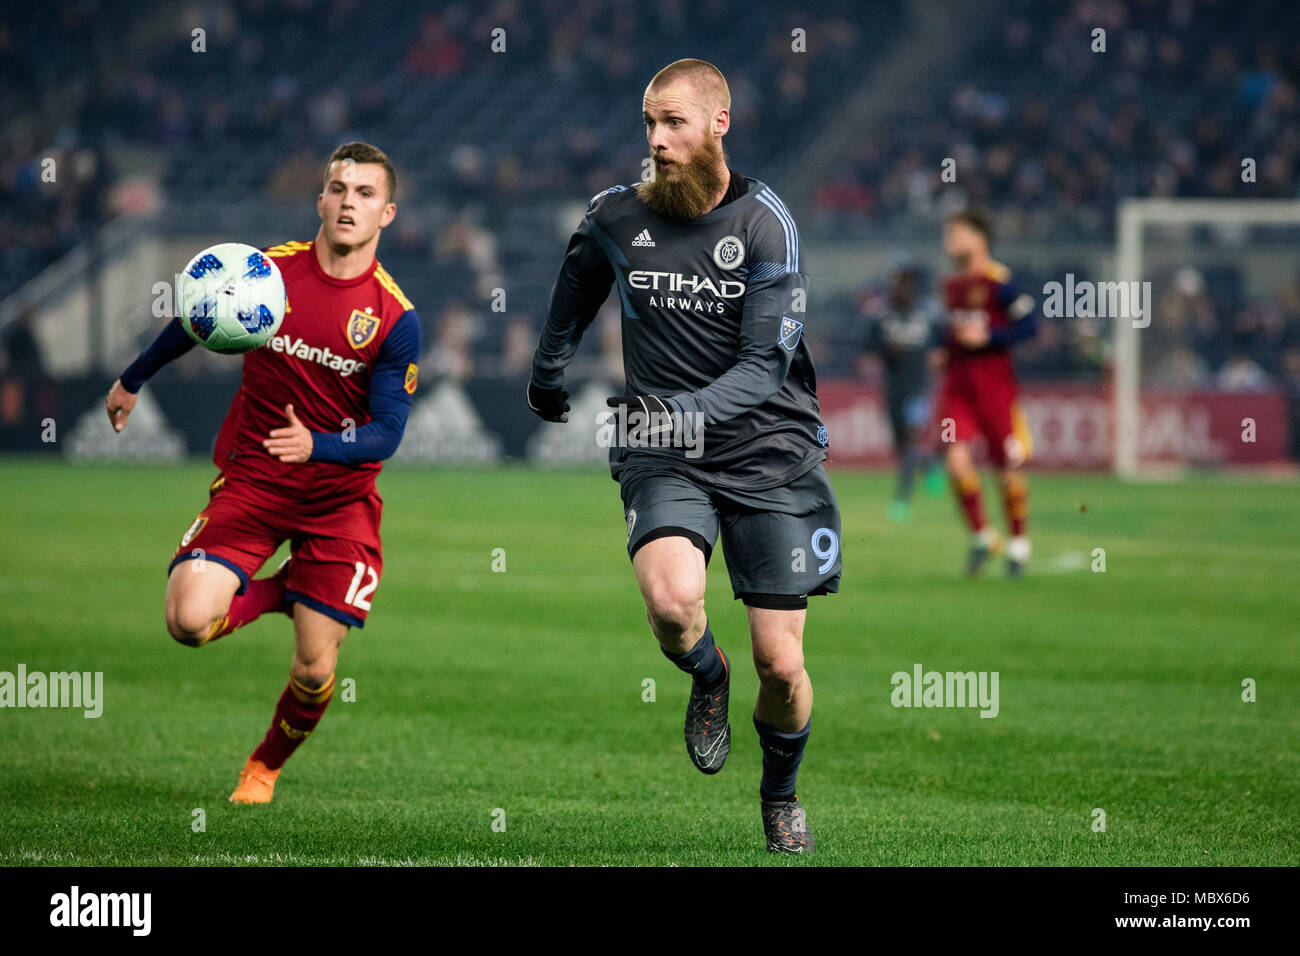 Bronx, New York, USA. 11th April, 2018. Jo Inge Berget (9) of NYCFC chases down a ball against Brooks Lennon (12) of Real Salt Lake during the second half of the game. NYCFC won 4-0. - Stock Image